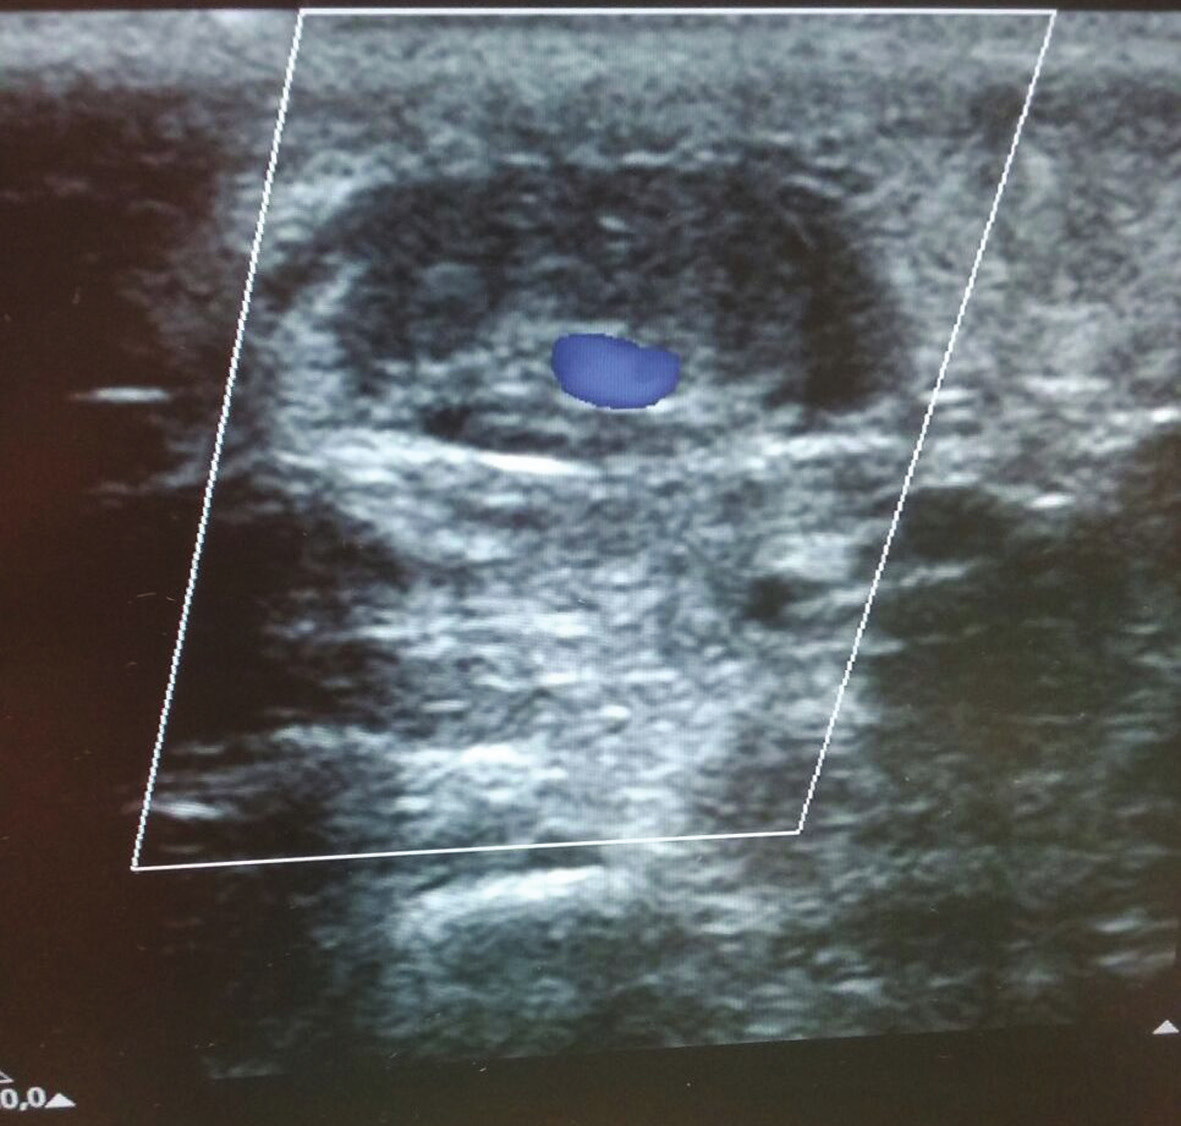 Ultrazvuková kontrola žíly po prvním podvazu s patrným malým reziduálním průtokem